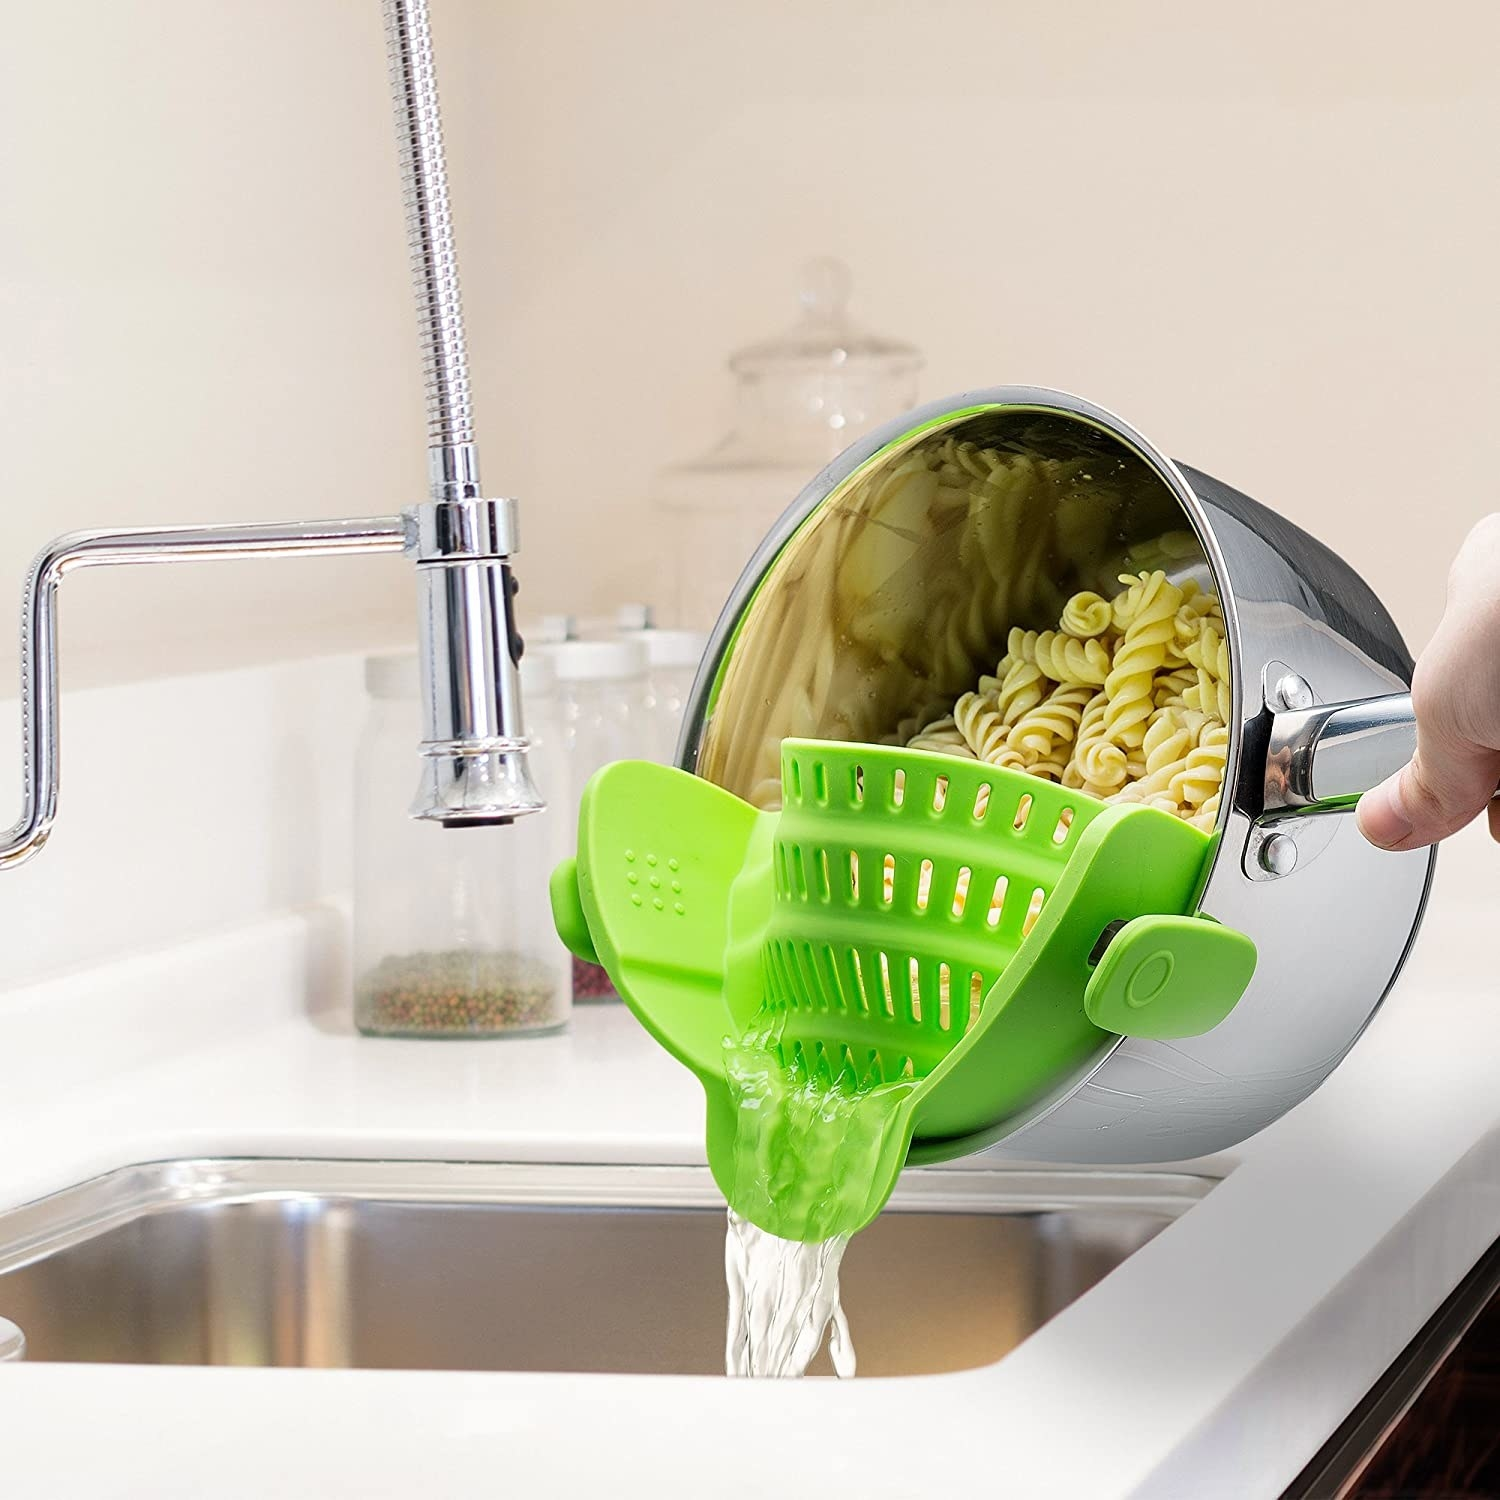 A person using the strainer to drain some pasta into the sink